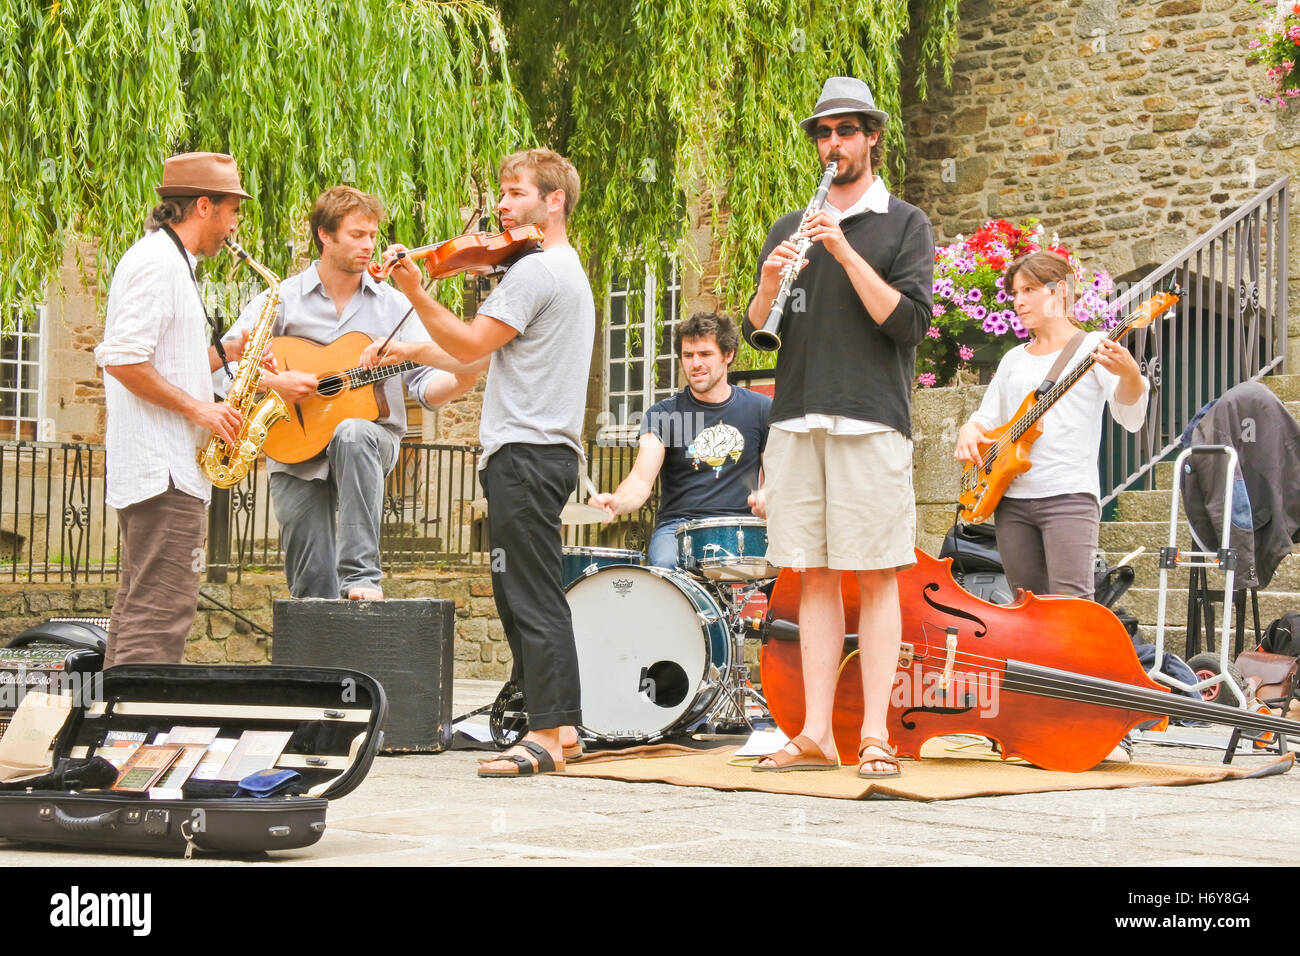 Street entertainers or Buskers in the medieval french town of Dinan - Stock Image